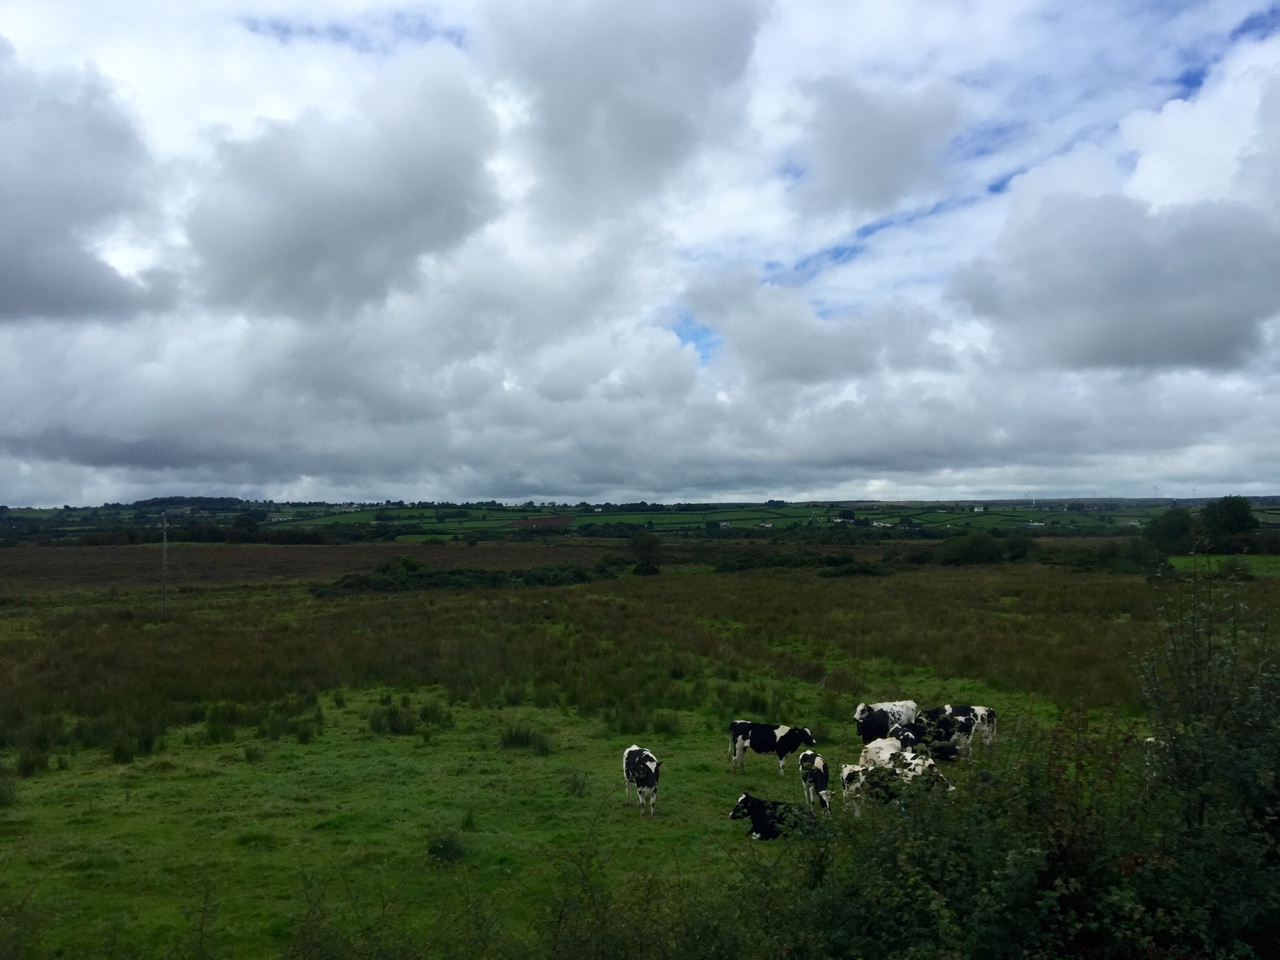 Northern Ireland dairy farming at its finest.